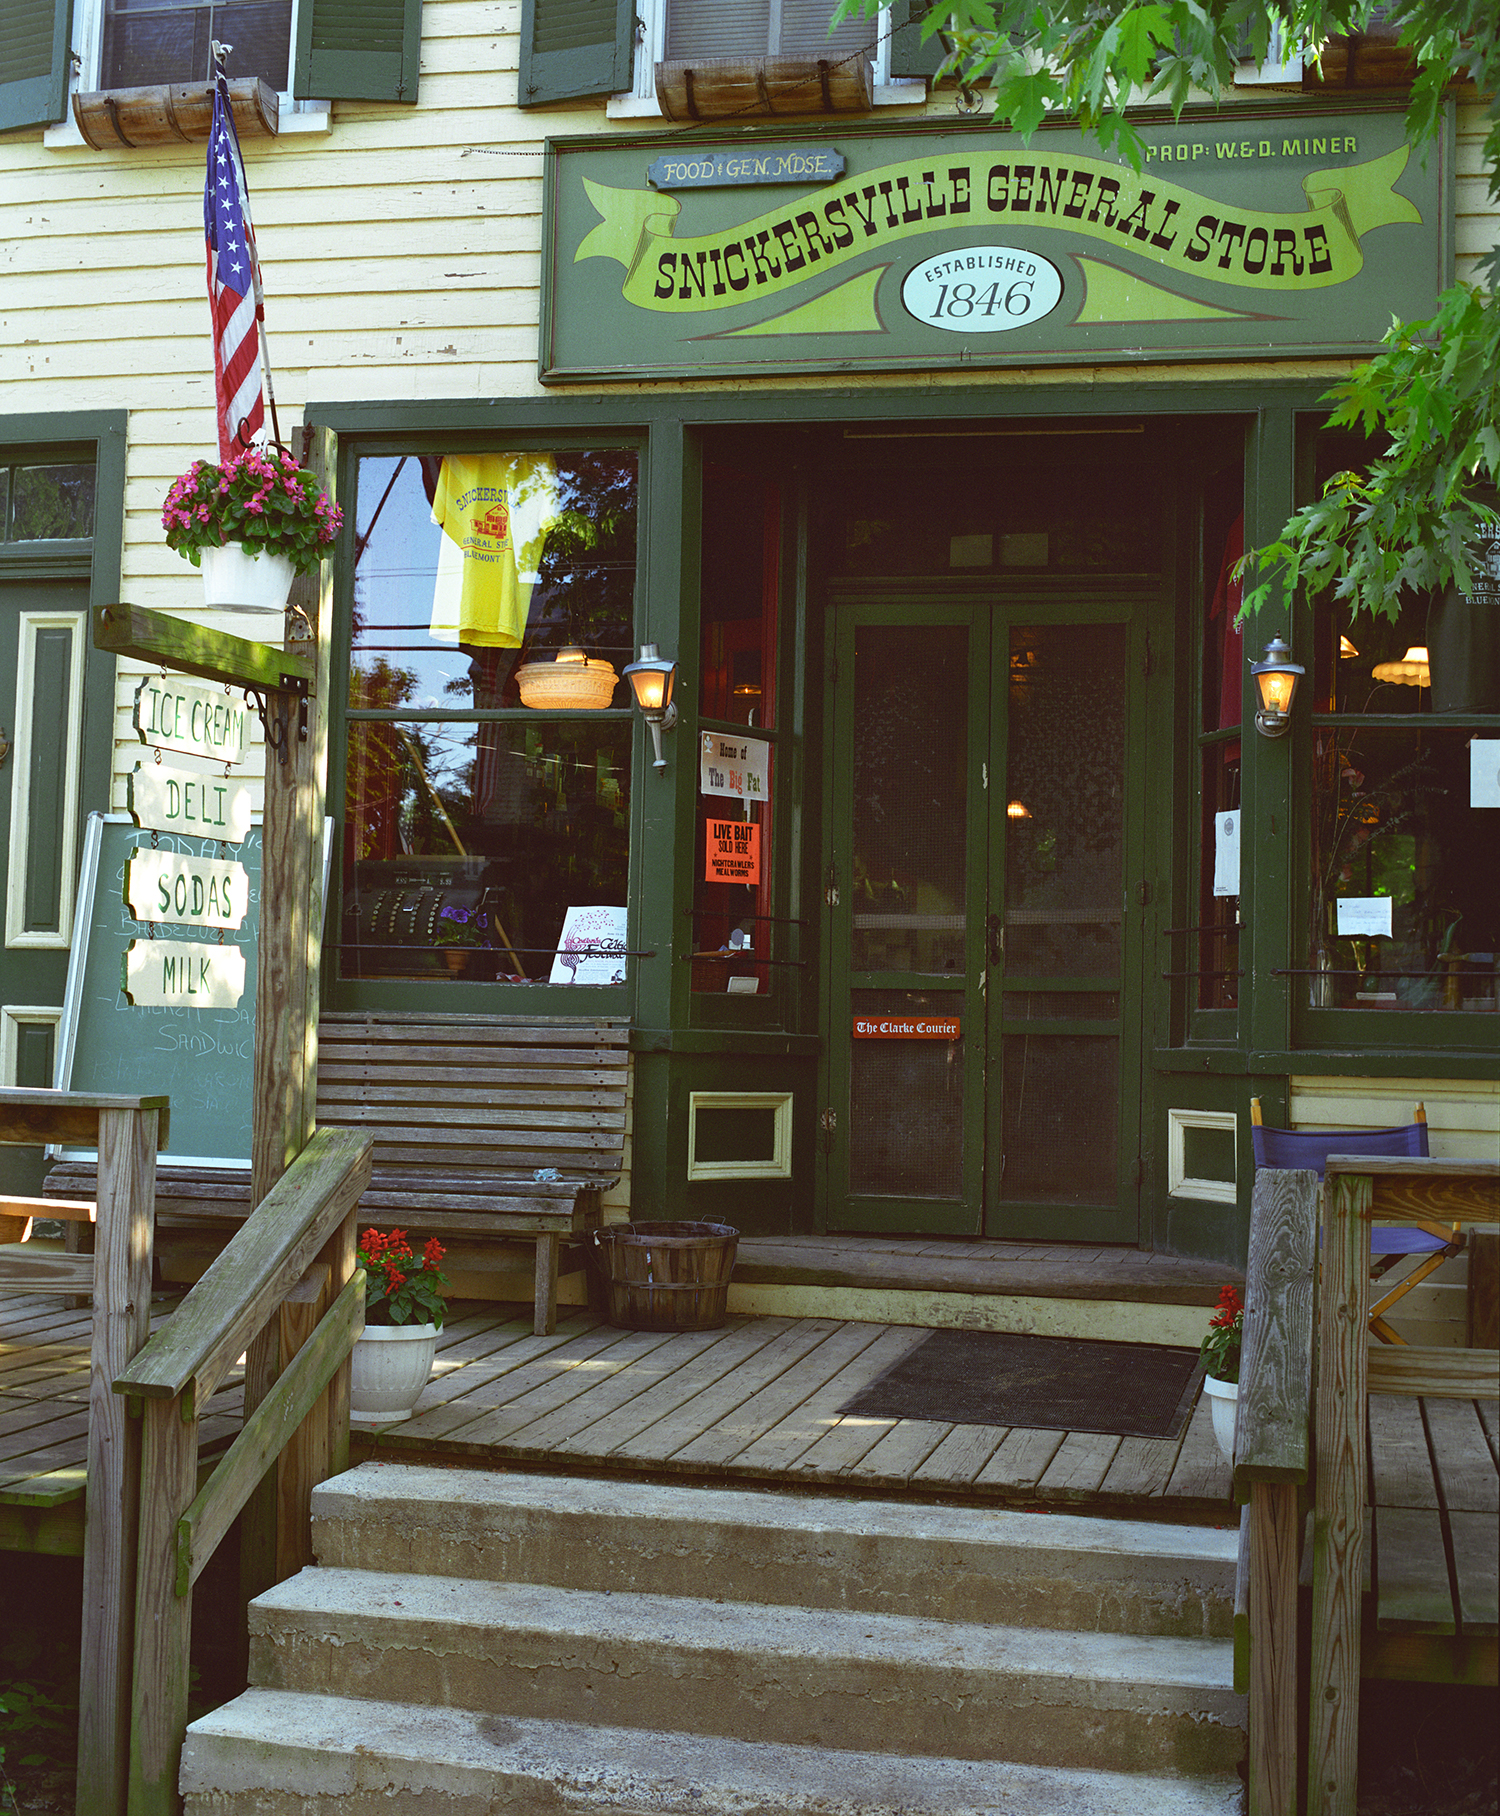 The Snickersville Store